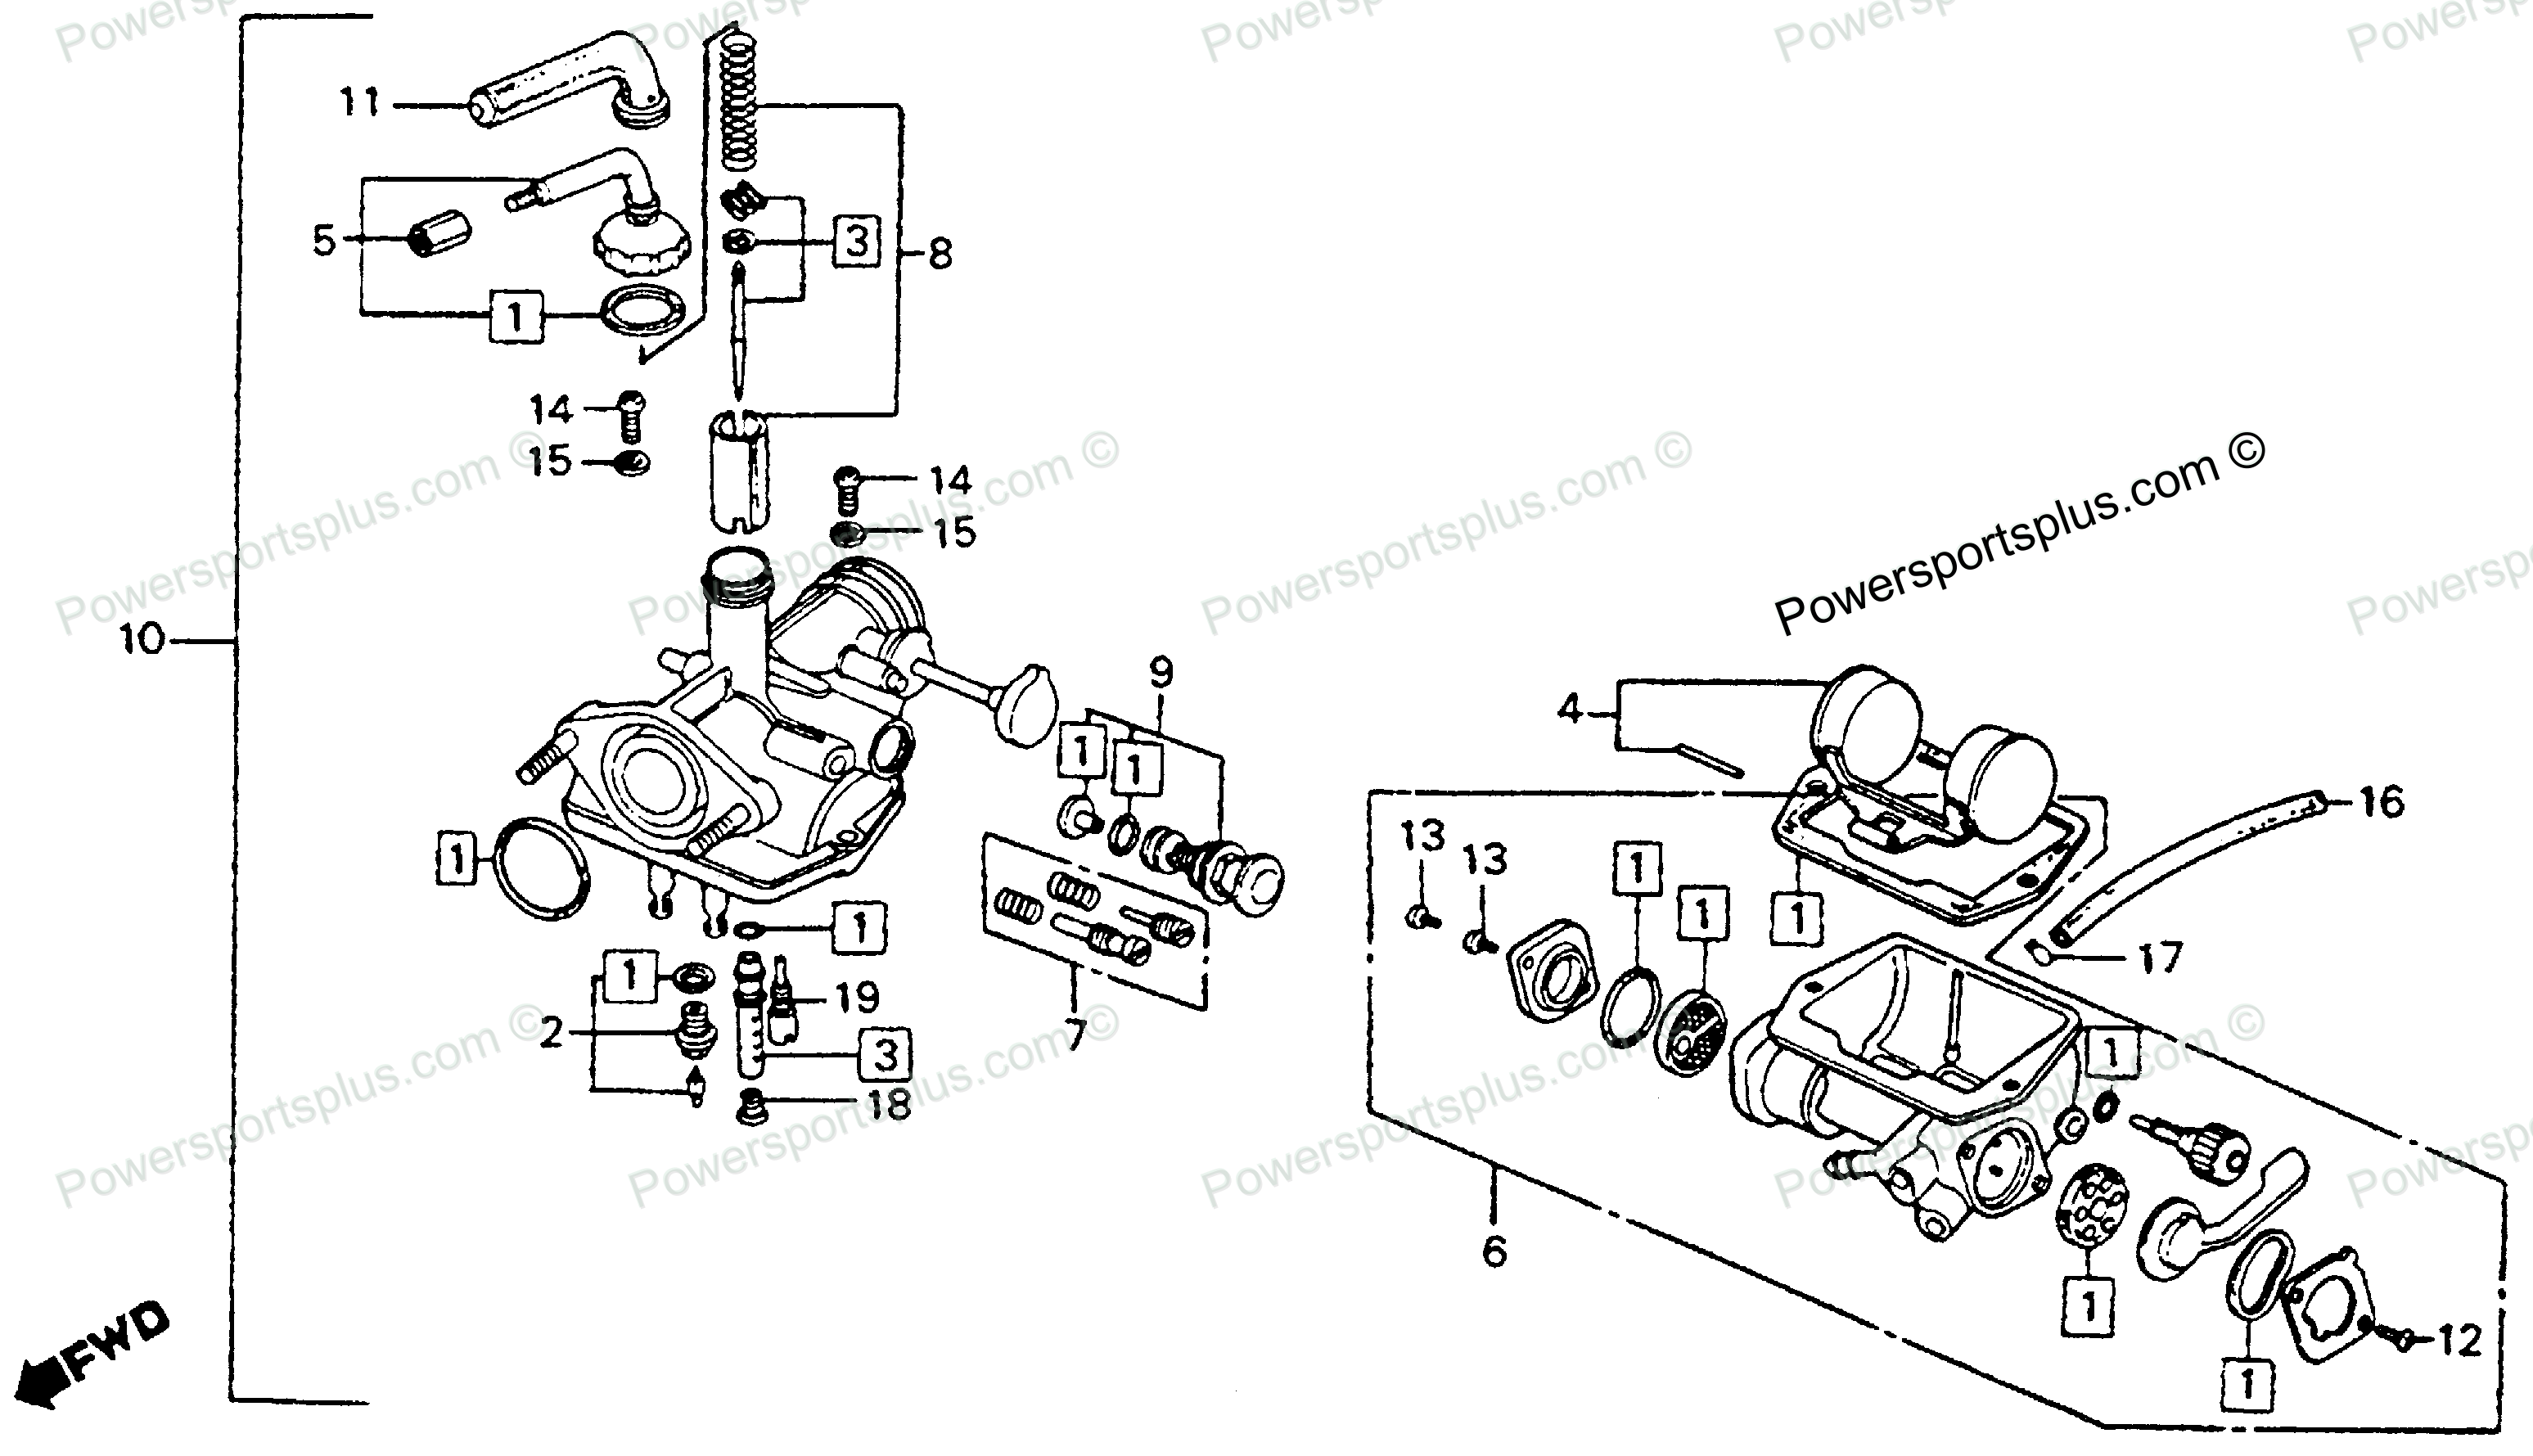 Diagram Of Honda Motorcycle Parts Ct90 A Carburetor K6 77 Diagram